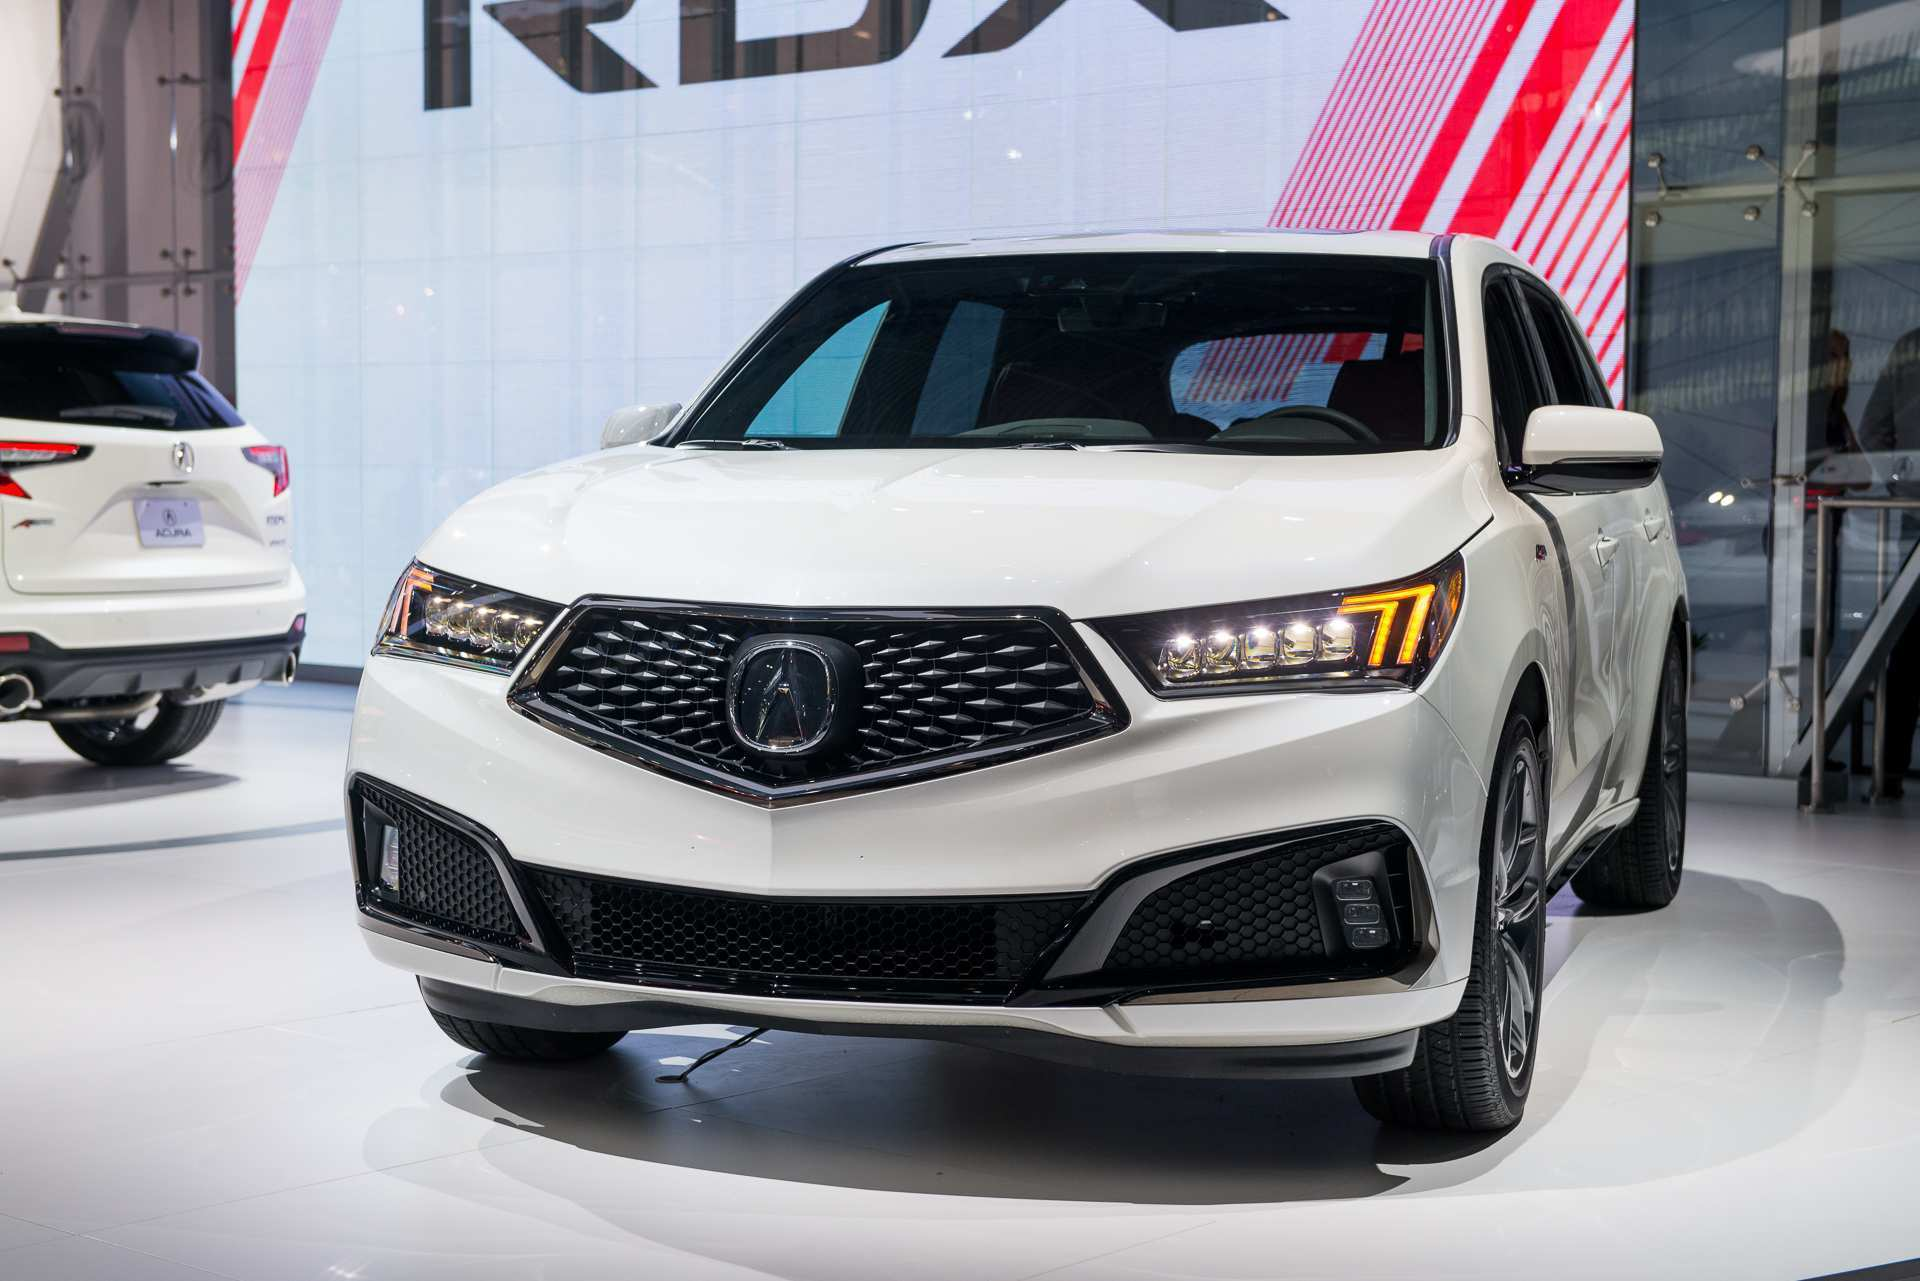 17 Gallery of New Acura Mdx 2019 Updates First Drive First Drive with New Acura Mdx 2019 Updates First Drive